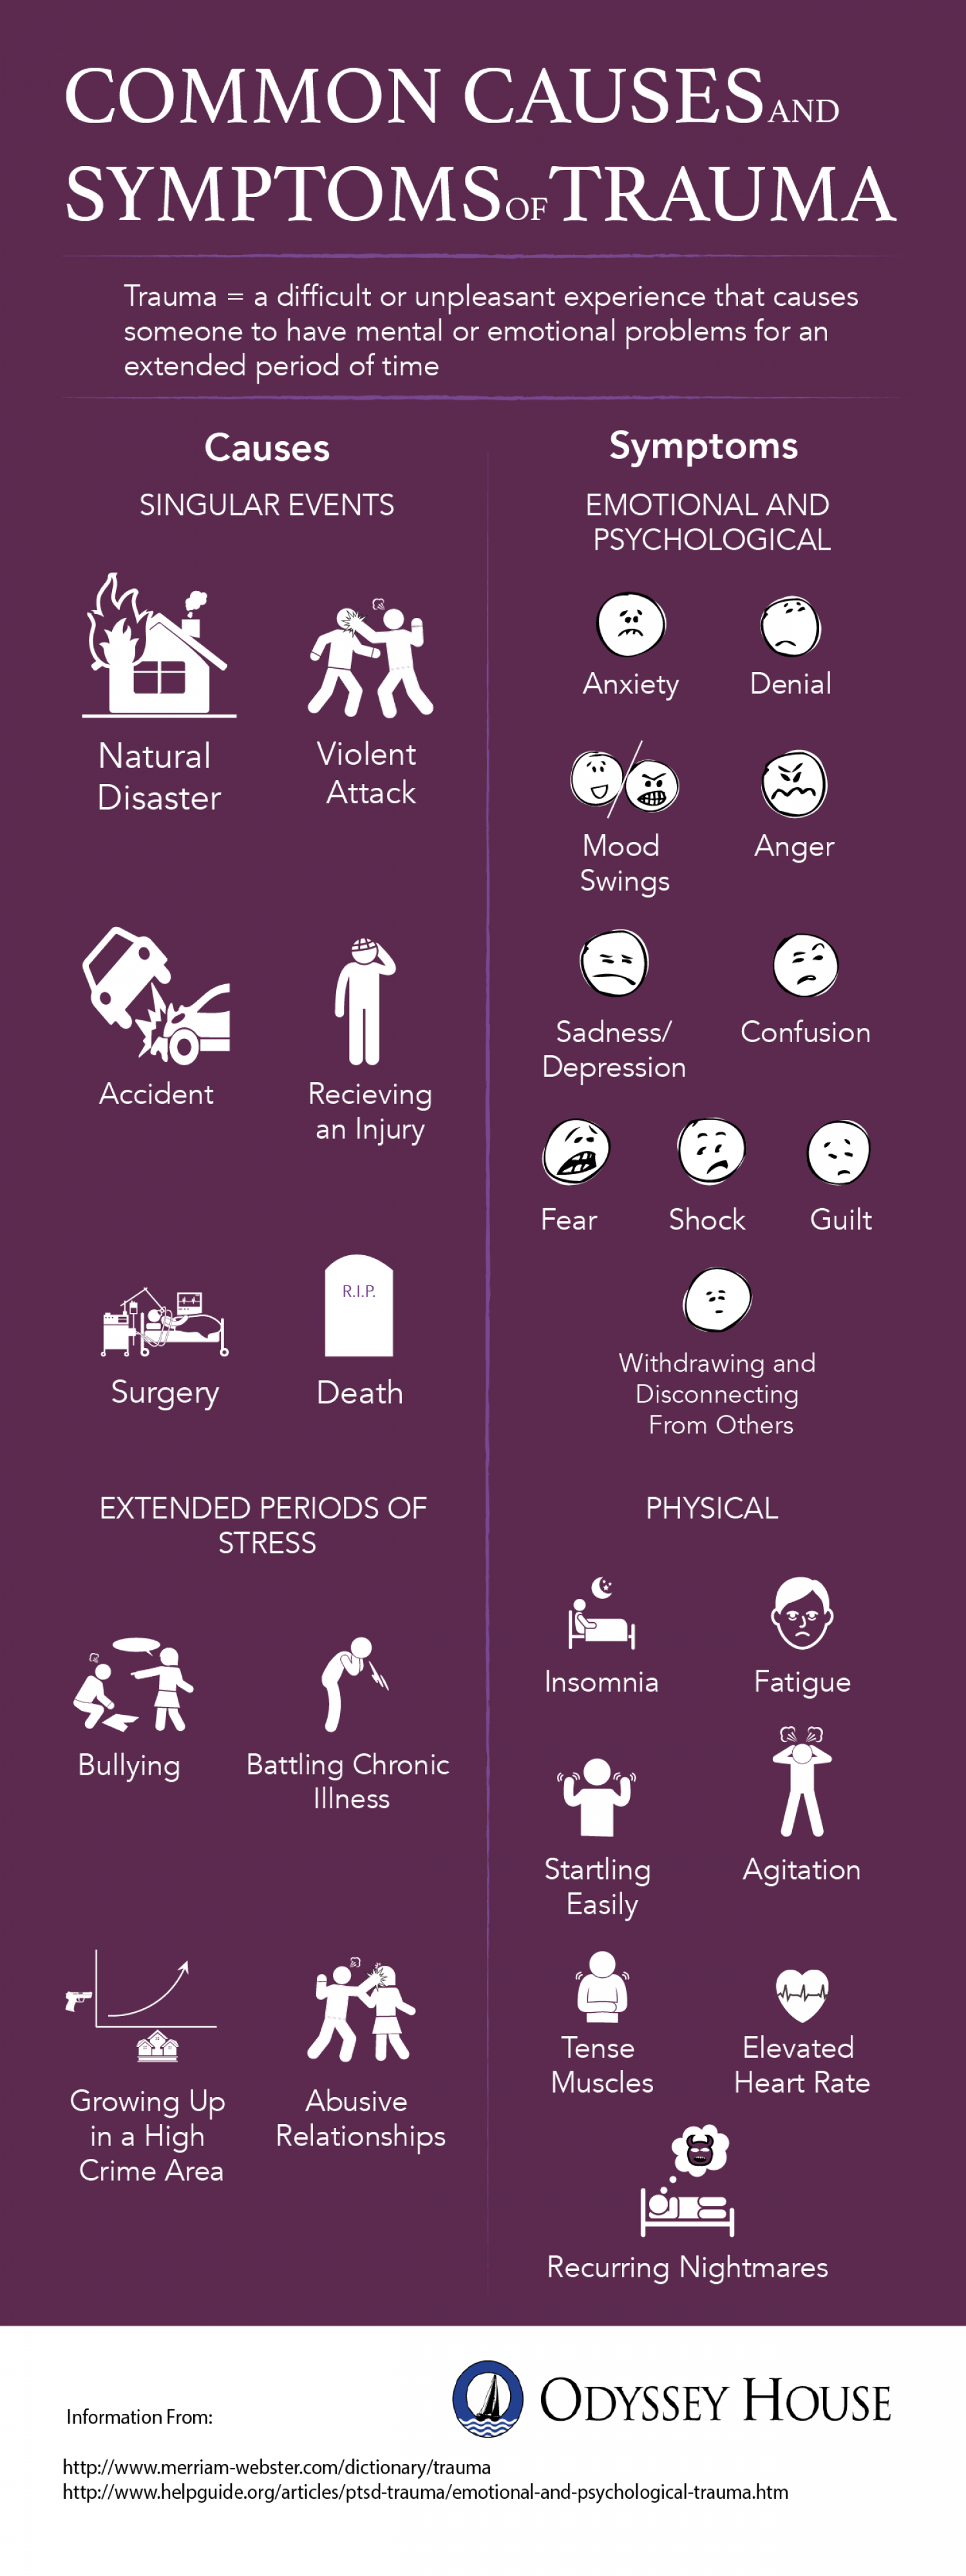 Common Causes and Symptoms of Trauma Infographic